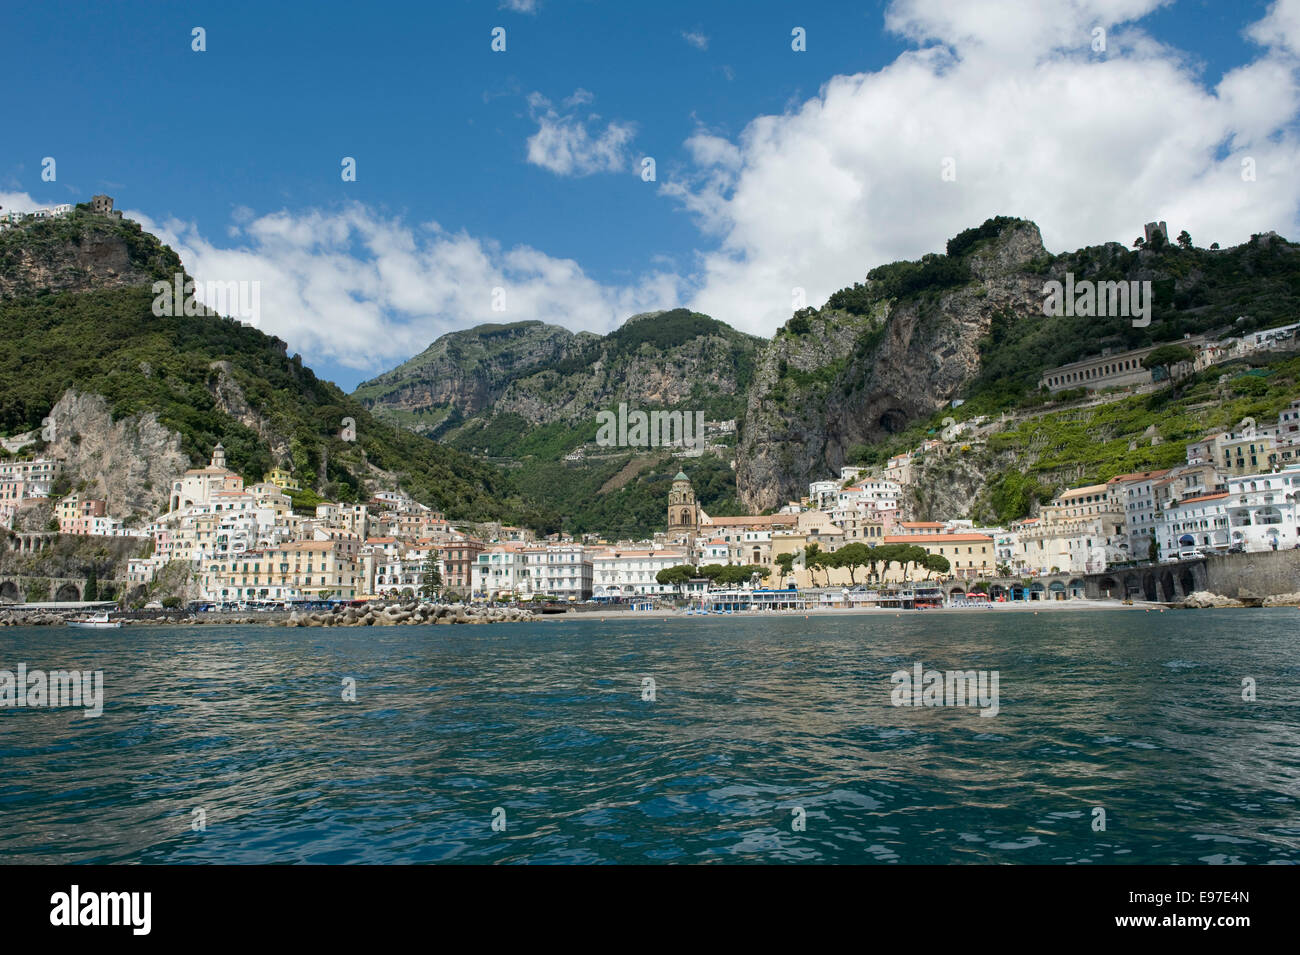 The town of Atrani near Amalfi seen from a boat on the Bay of Salerno, Province of Salerno,  Campania, Italy May - Stock Image